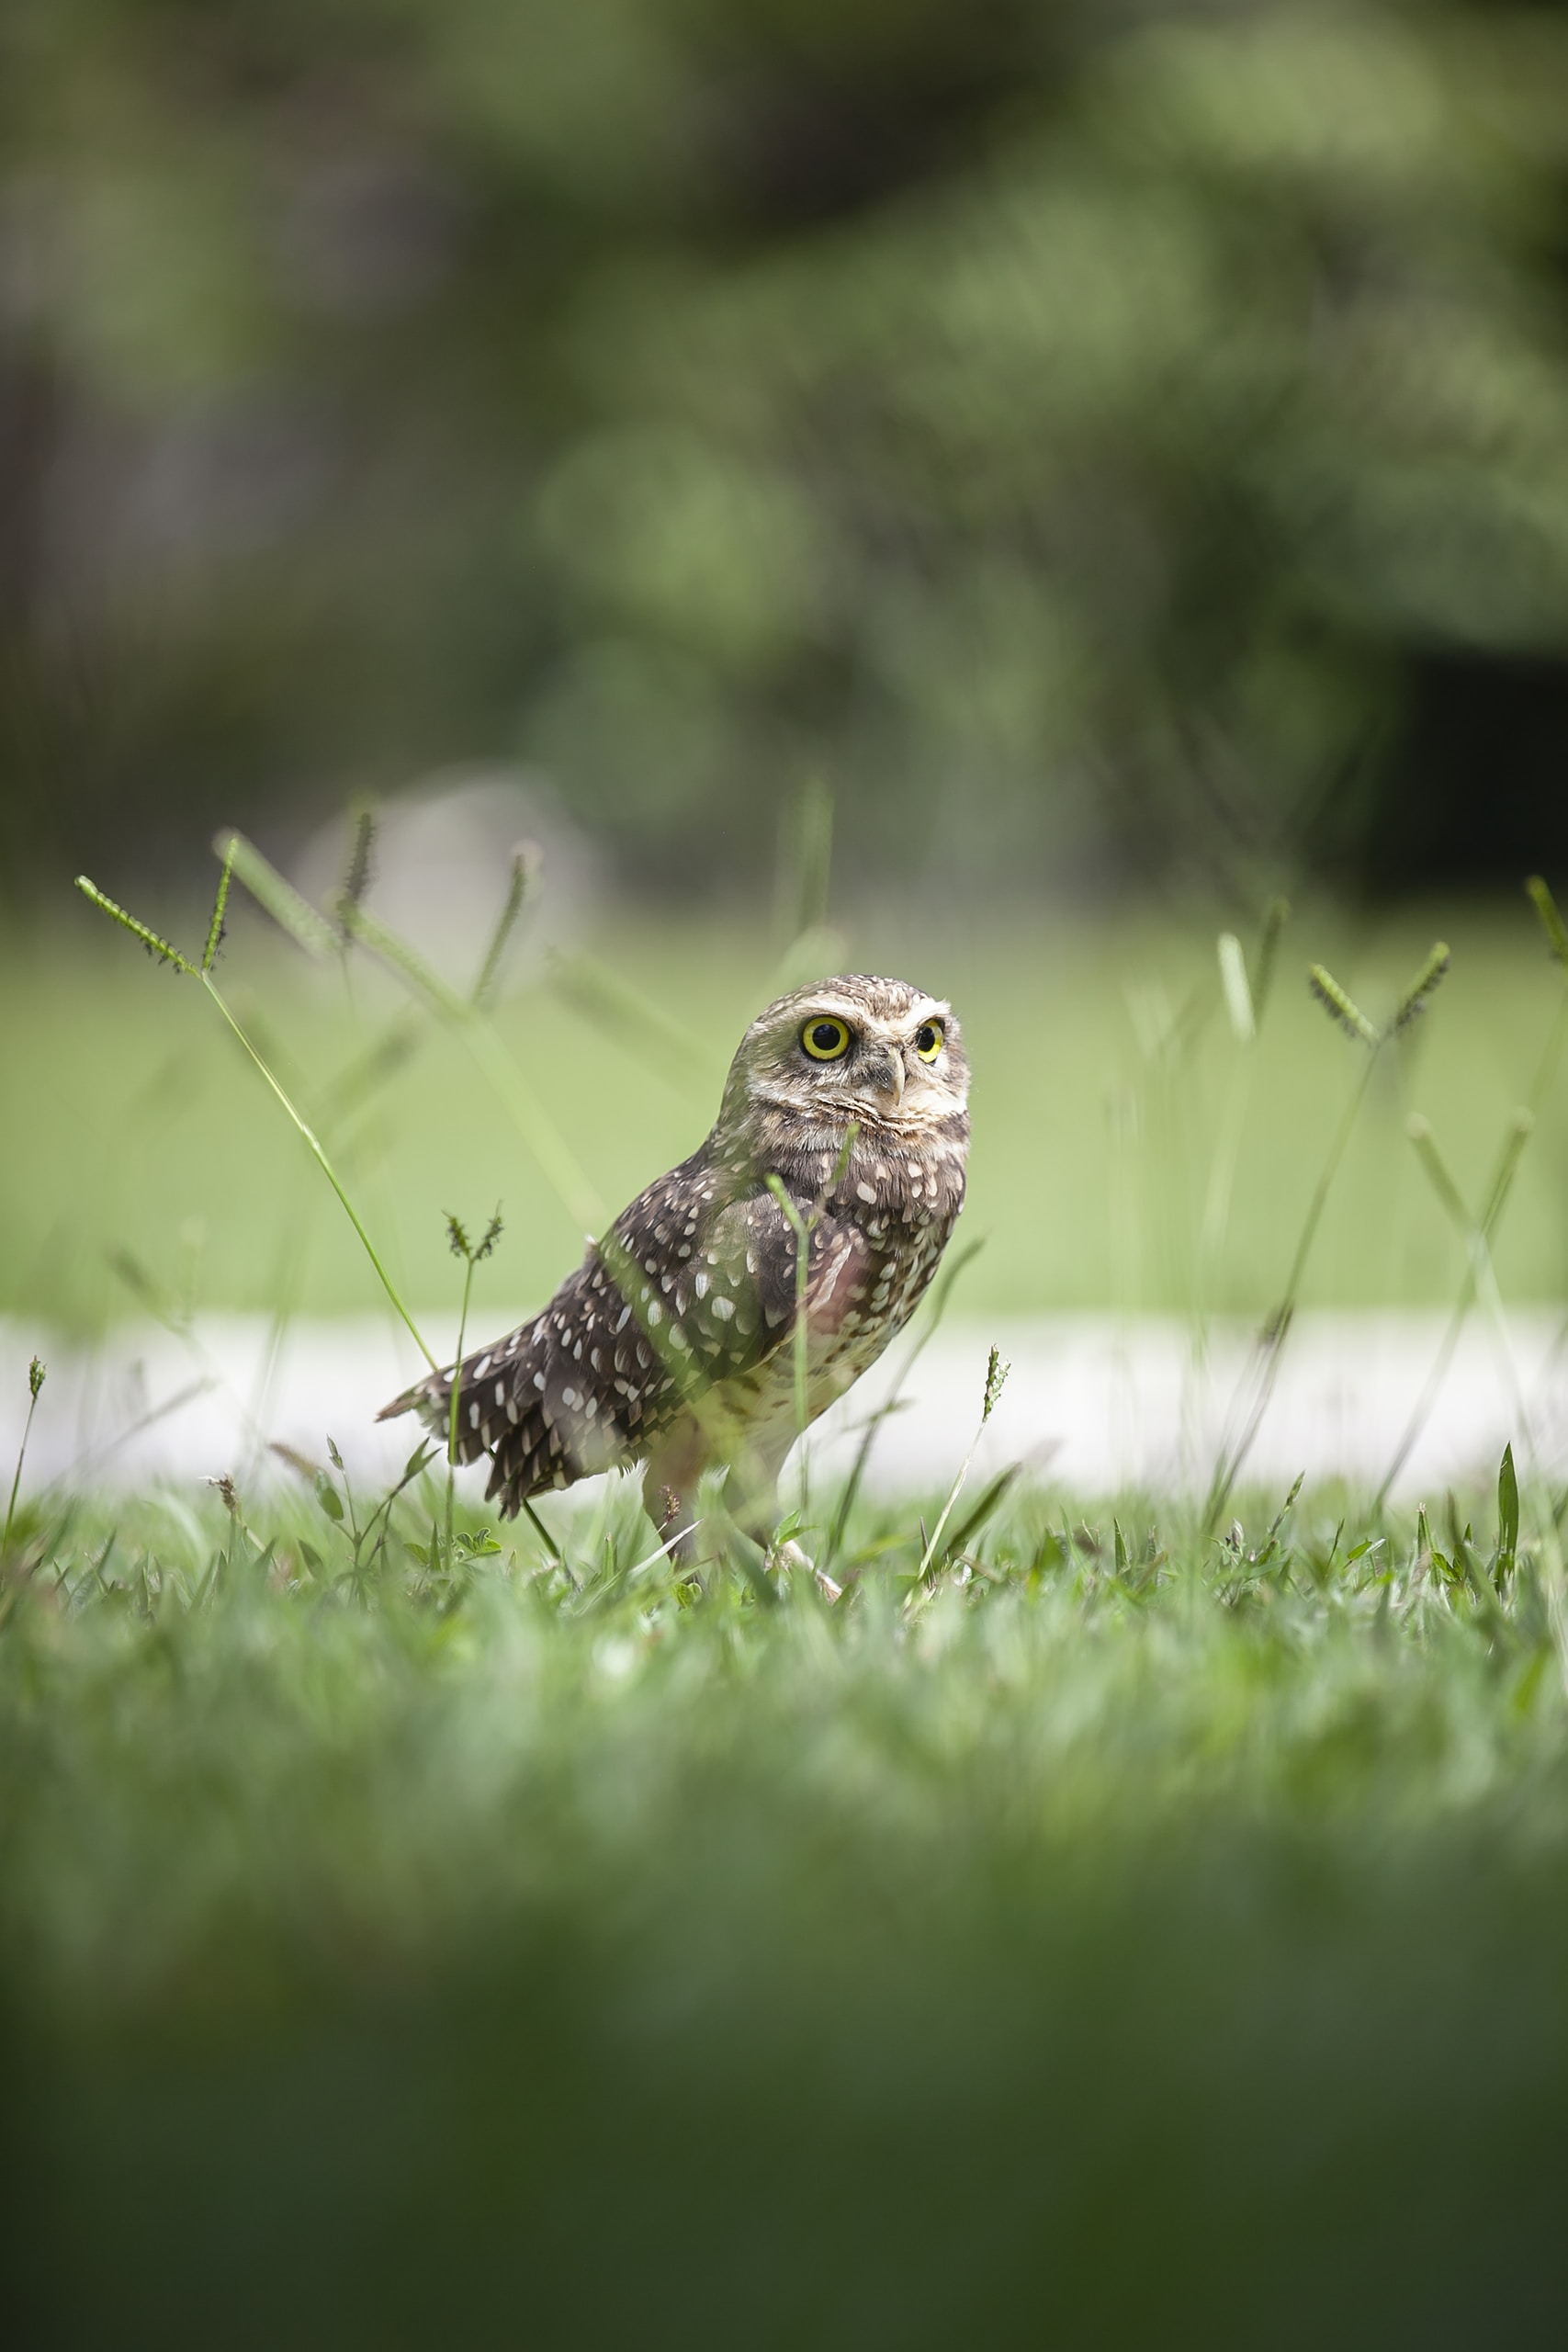 brown and white owl on green grass during daytime